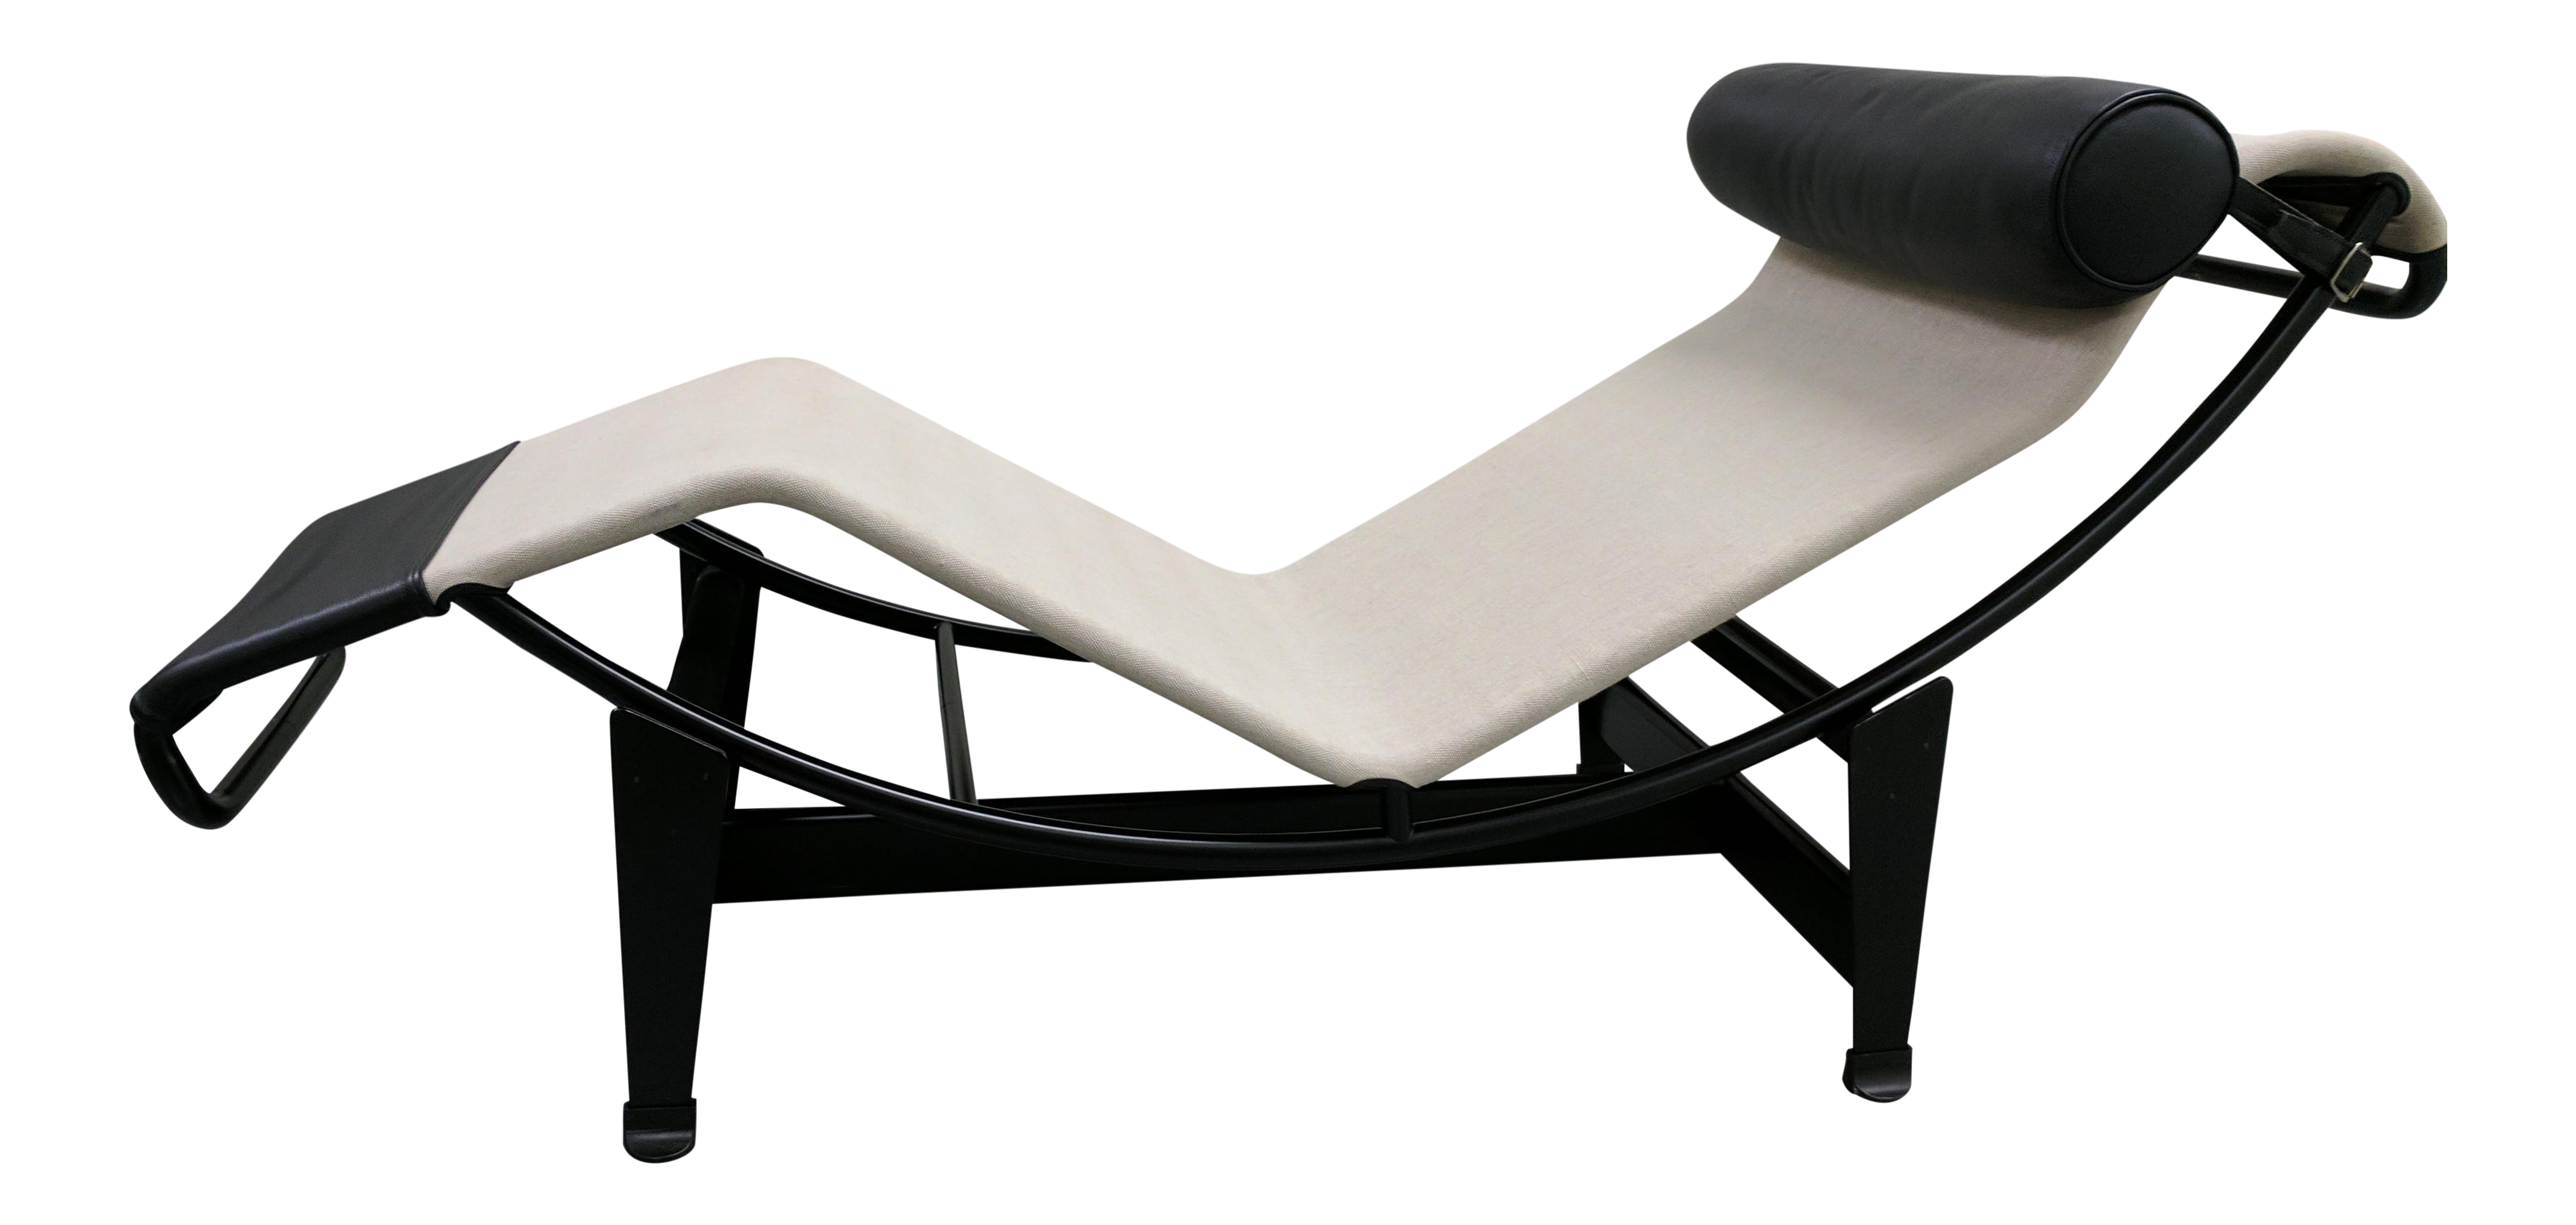 Le corbusier designed lc4 chaise longue chairish for Chaise longue le corbusier prezzo